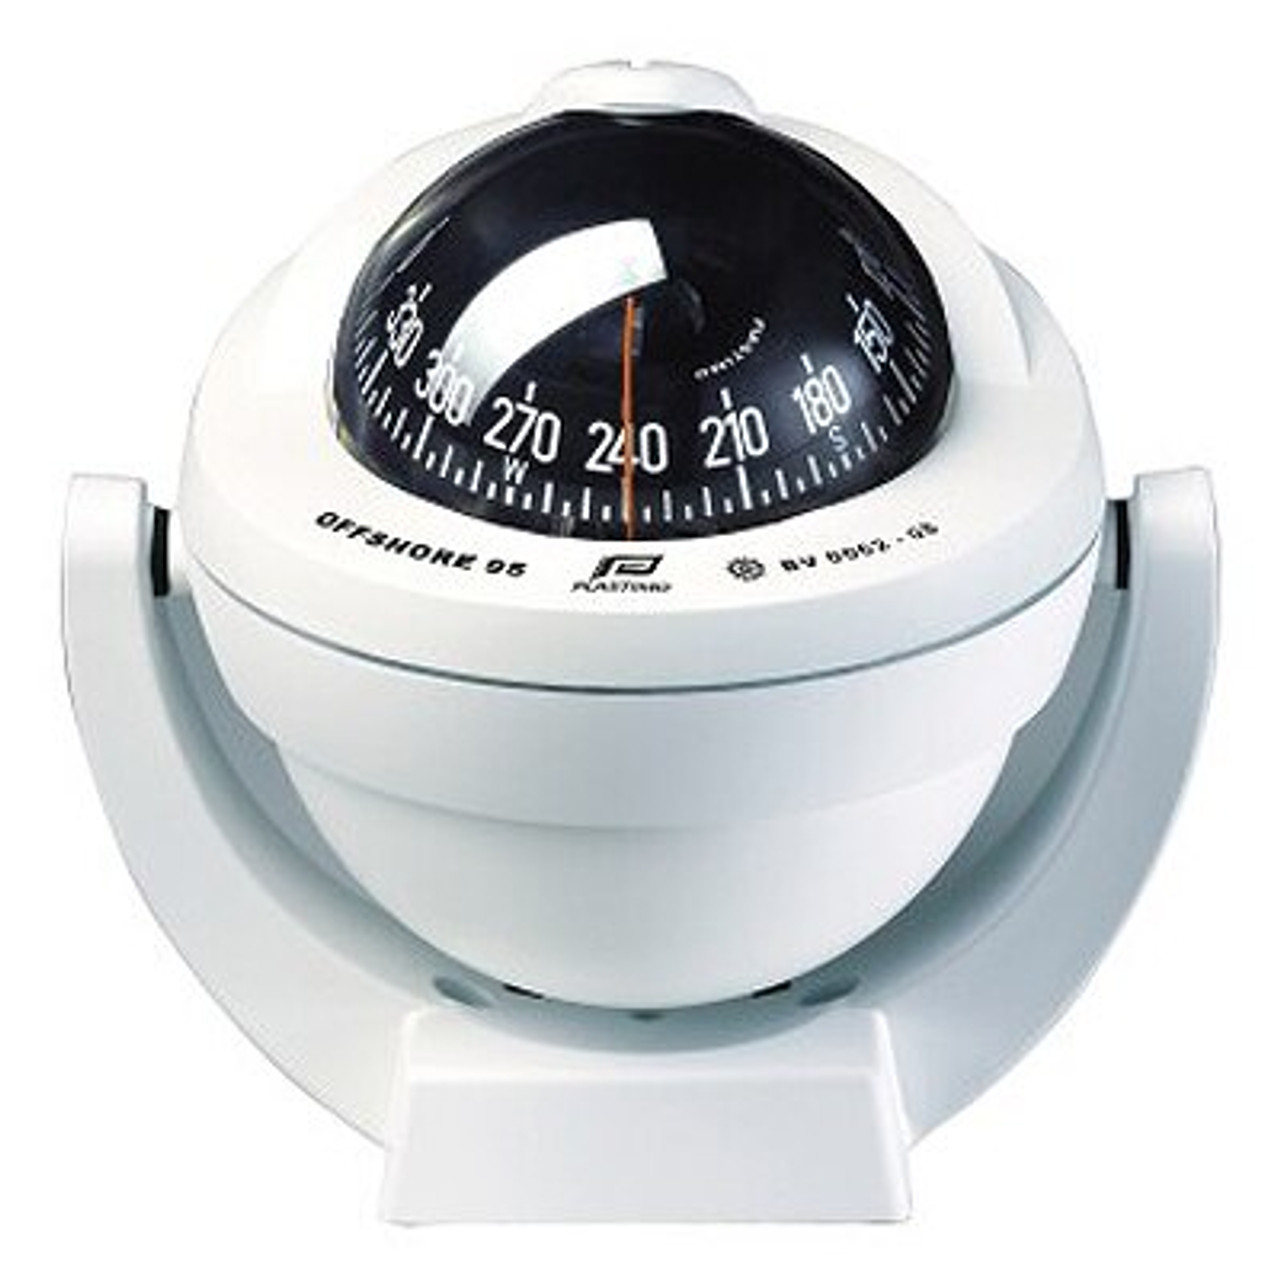 BOAT//YACHT /& 12V LIGHTING PLASTIMO OFFSHORE 95 WHITE FLUSH MOUNT MARINE COMPASS